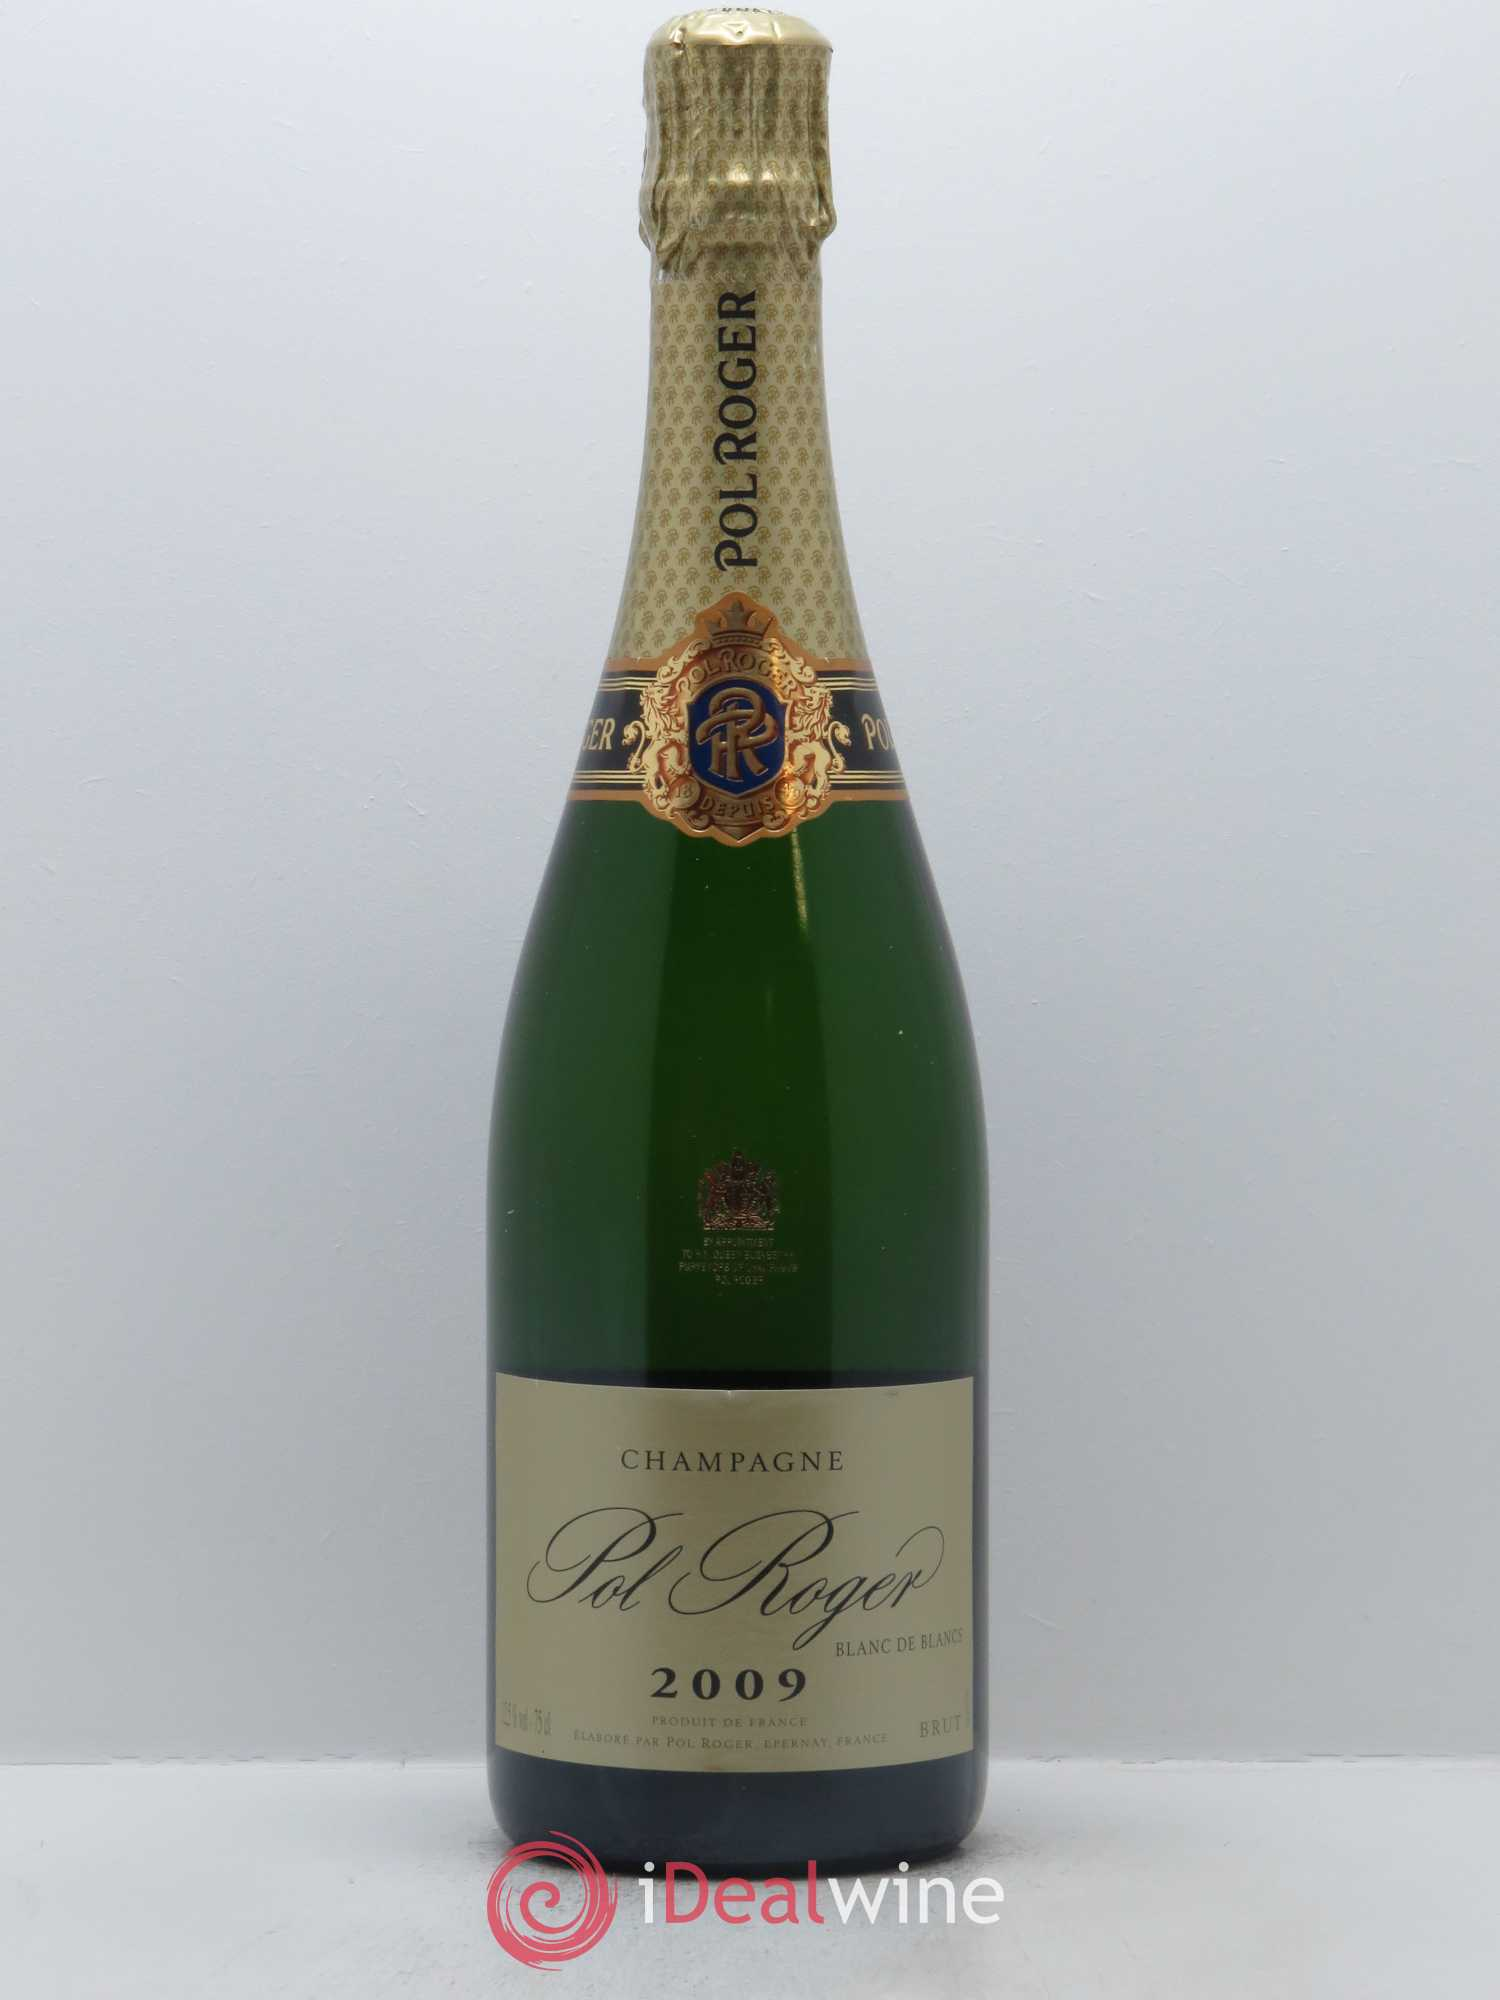 Blanc de blancs Pol Roger  2009 - Lot of 1 Bottle